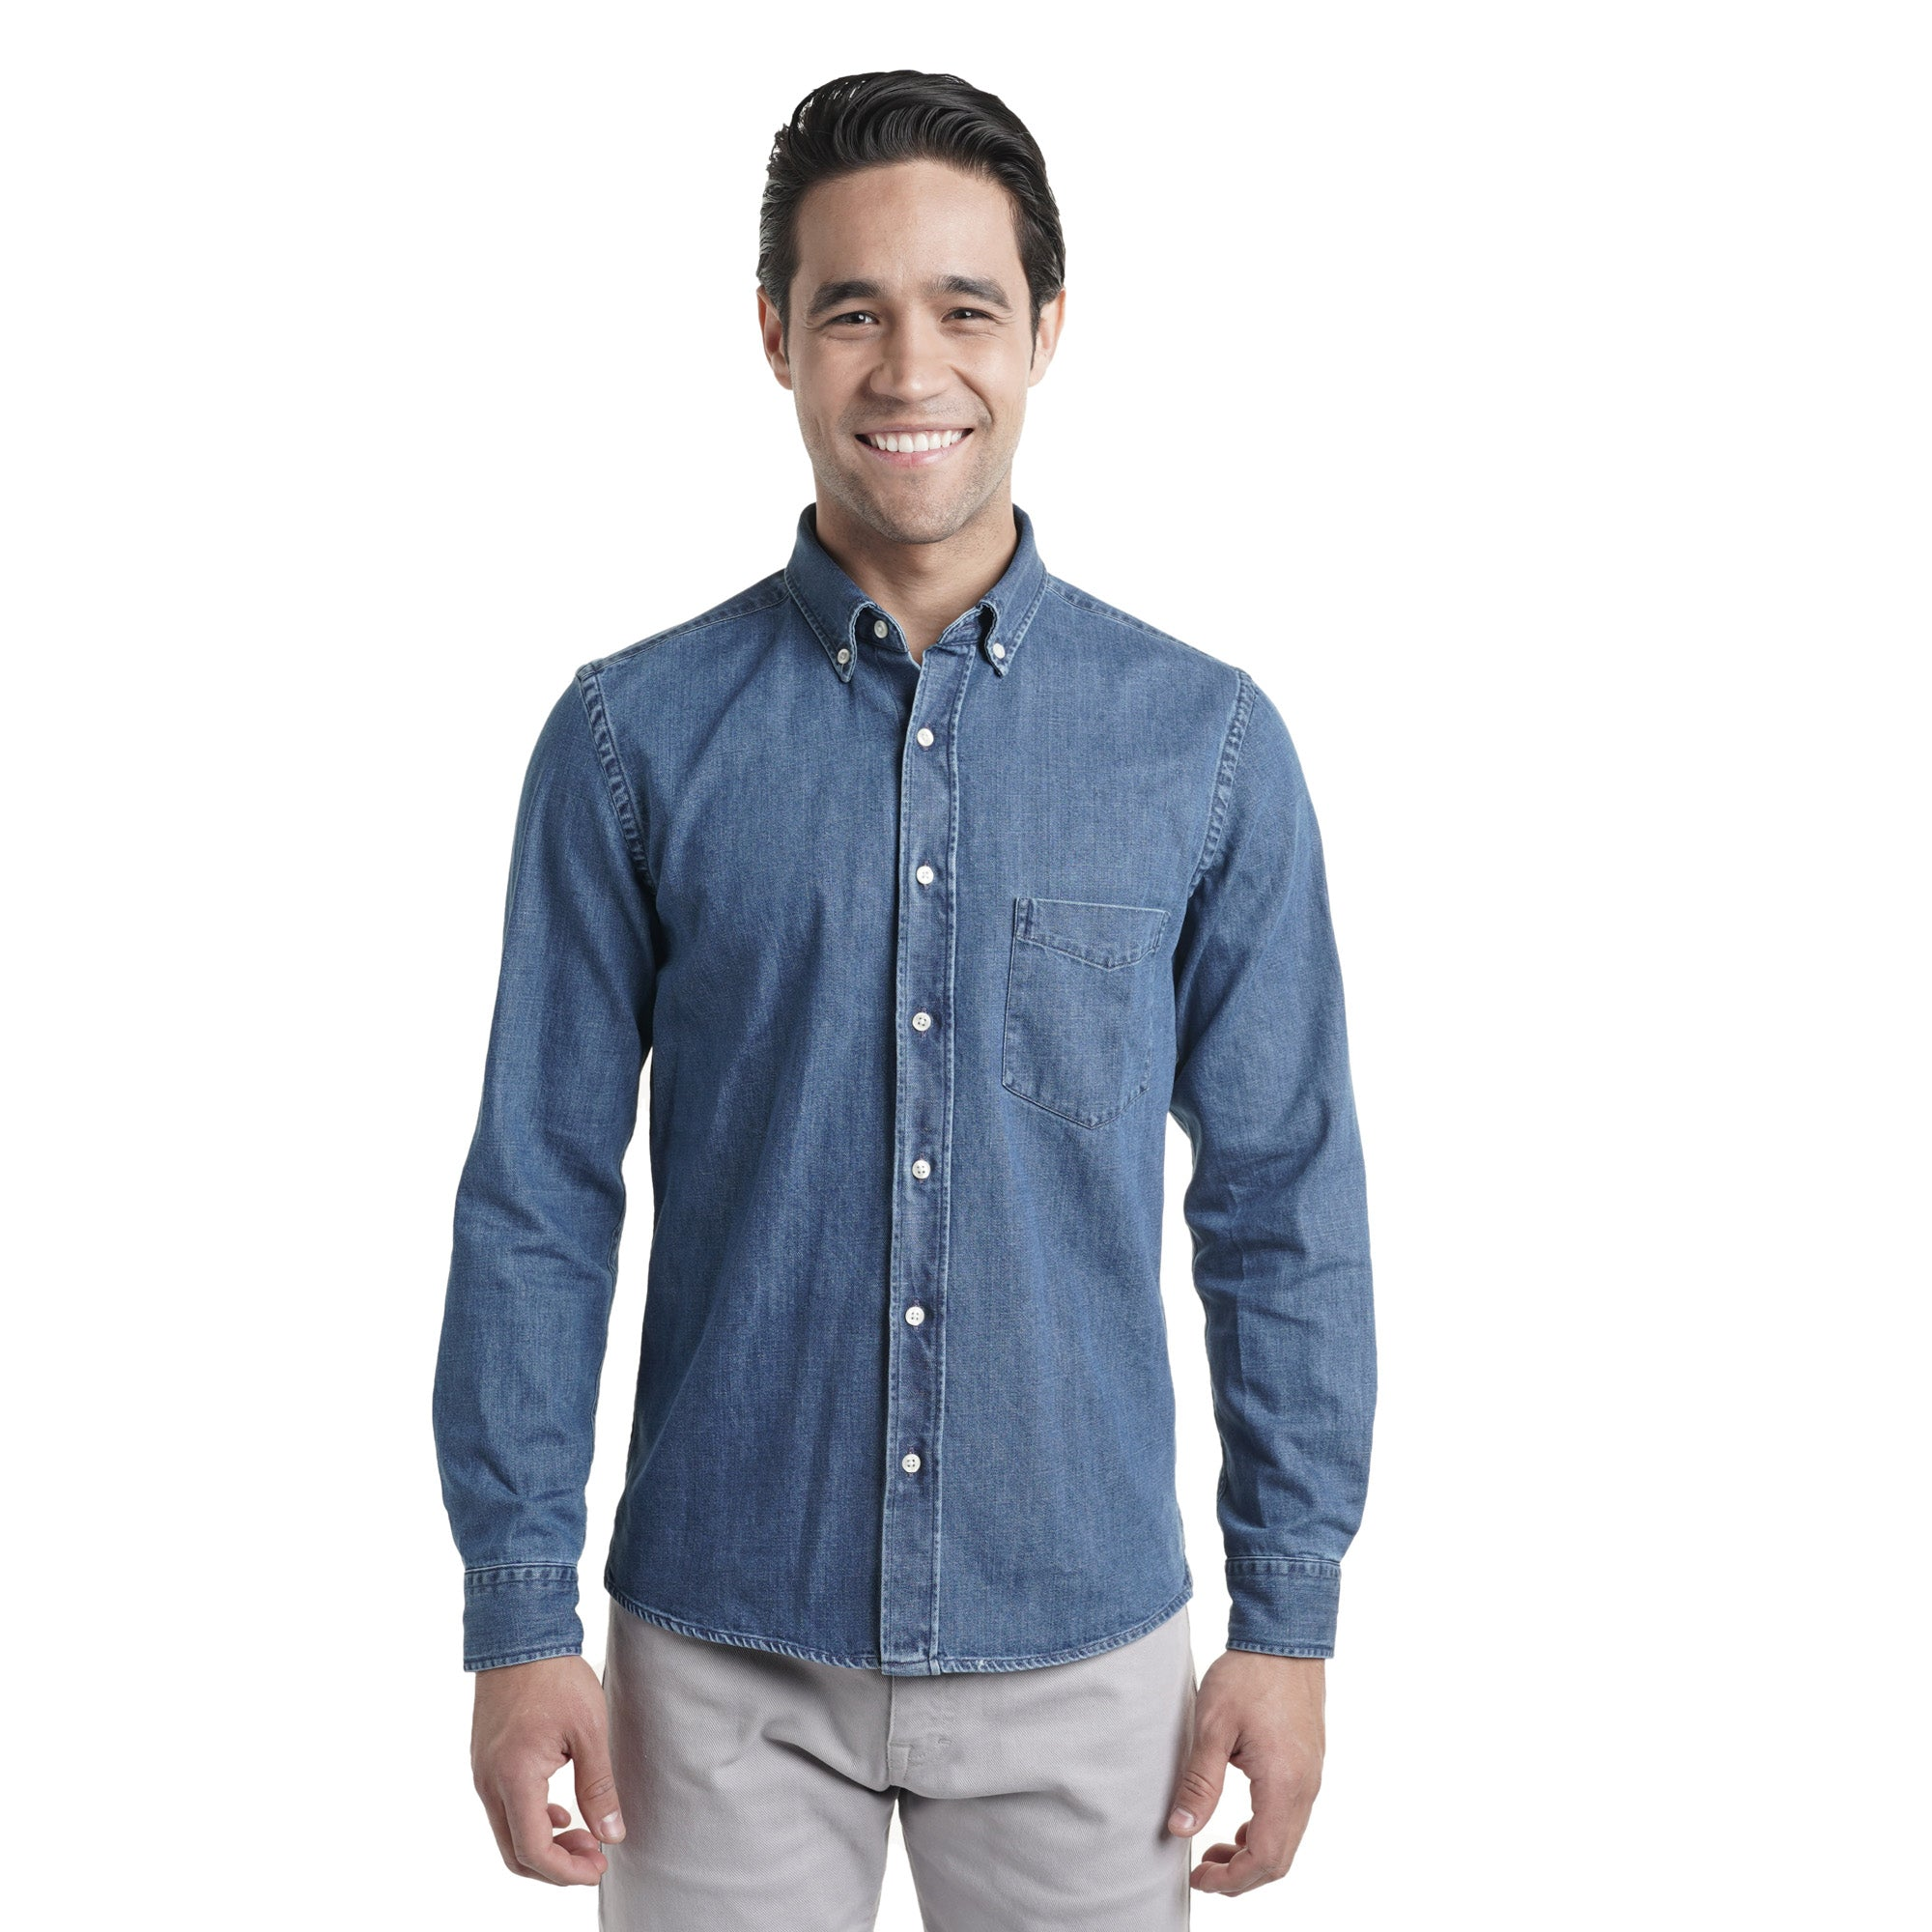 Denim Shirts Slim Fit - Medium Wash